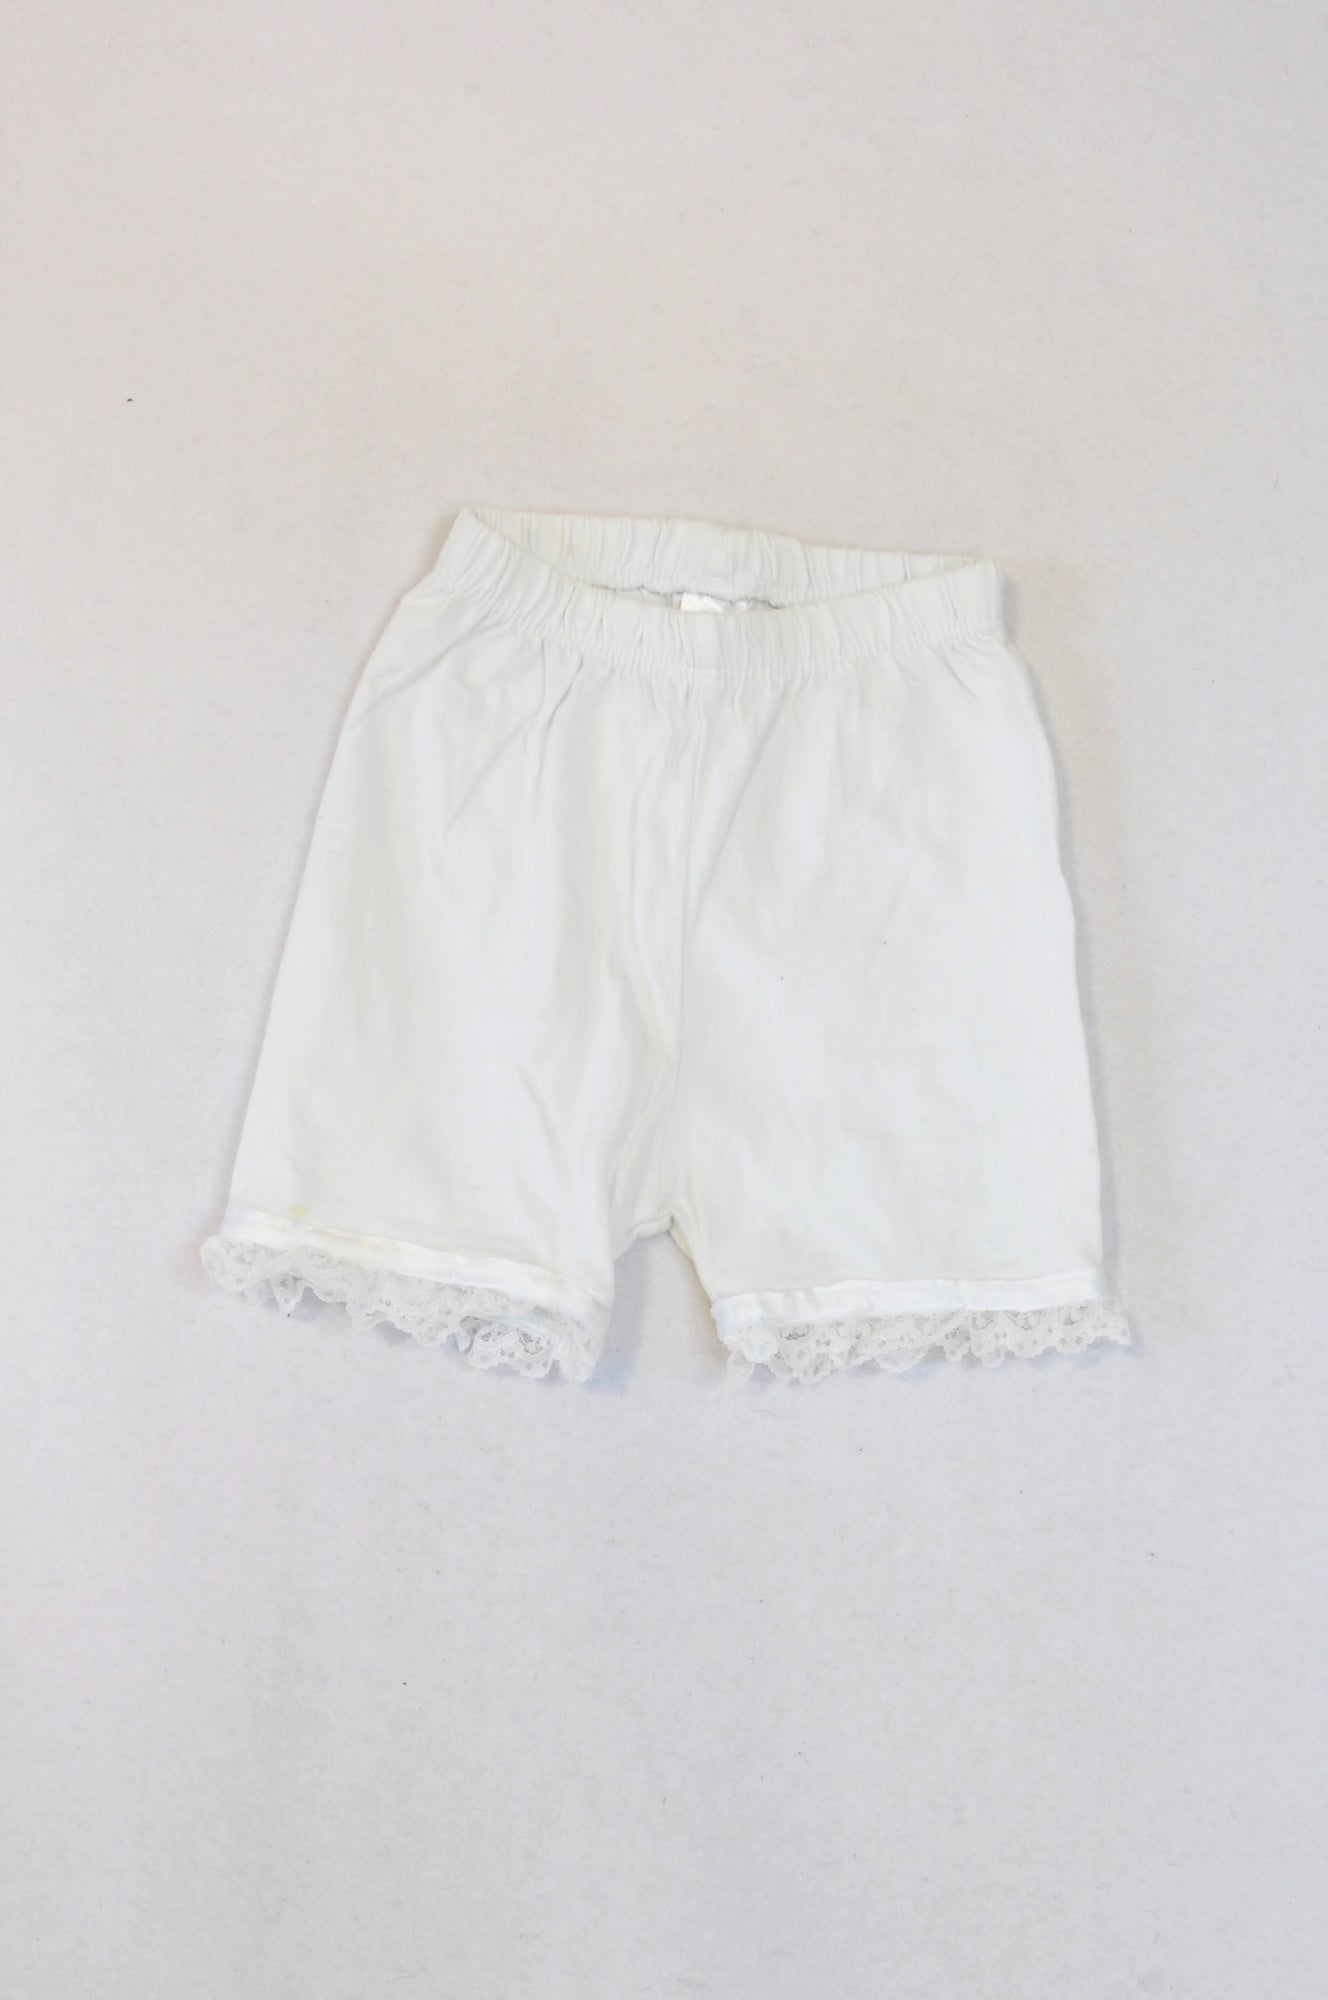 Ackermans White Lace Trim Shorts Girls 3-6 months